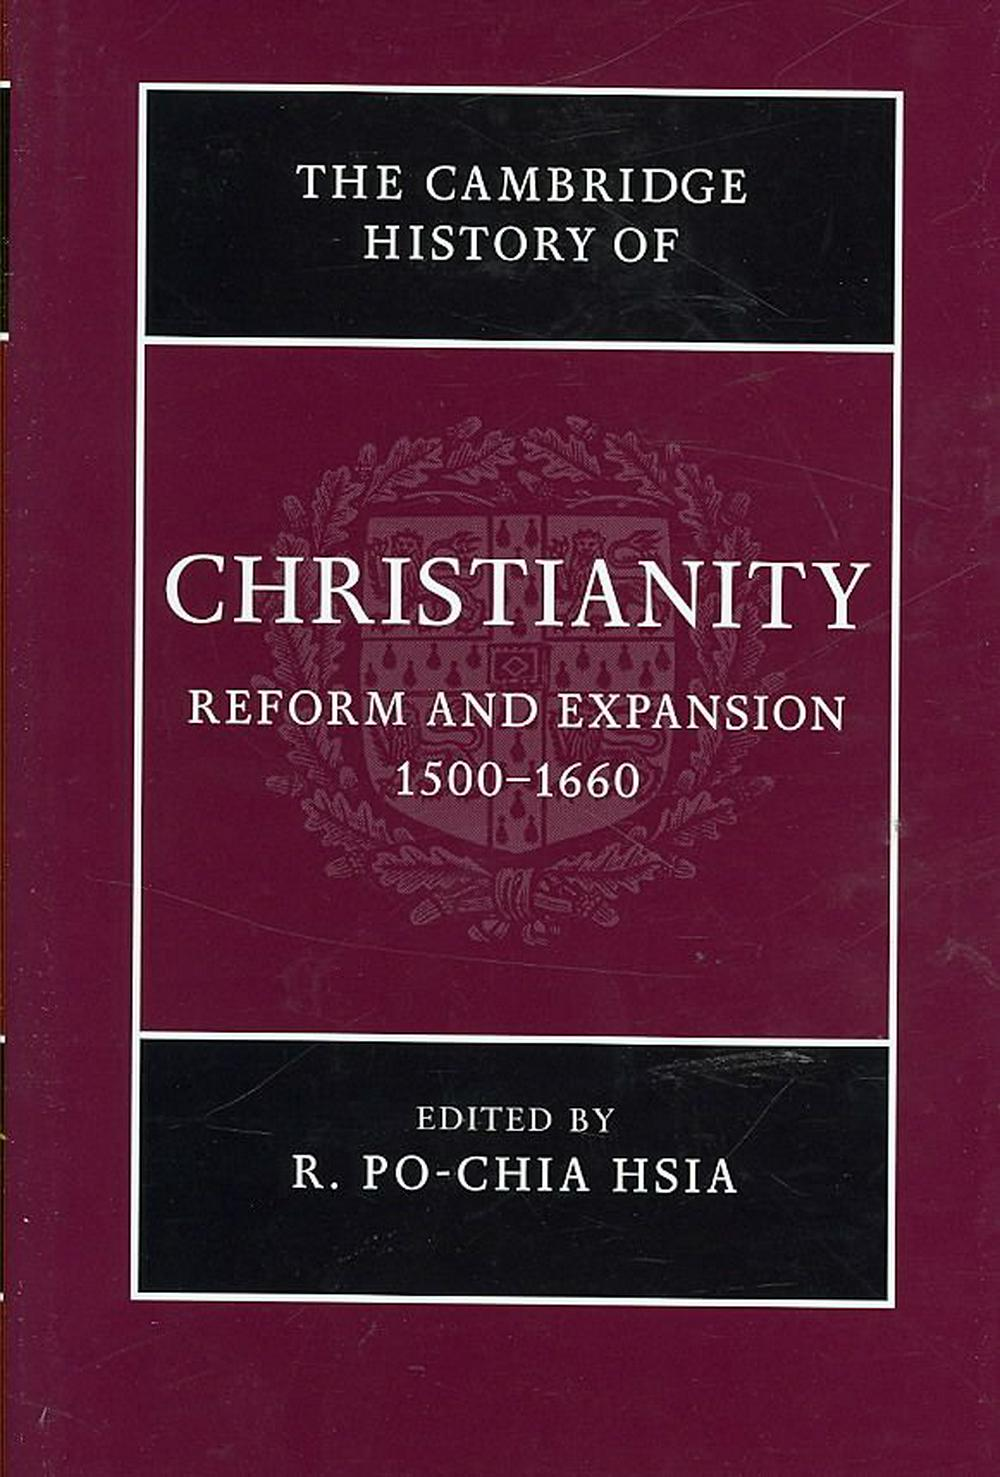 Cambridge History of Christianity: Volume 6, Reform and Expansion 1500-1660